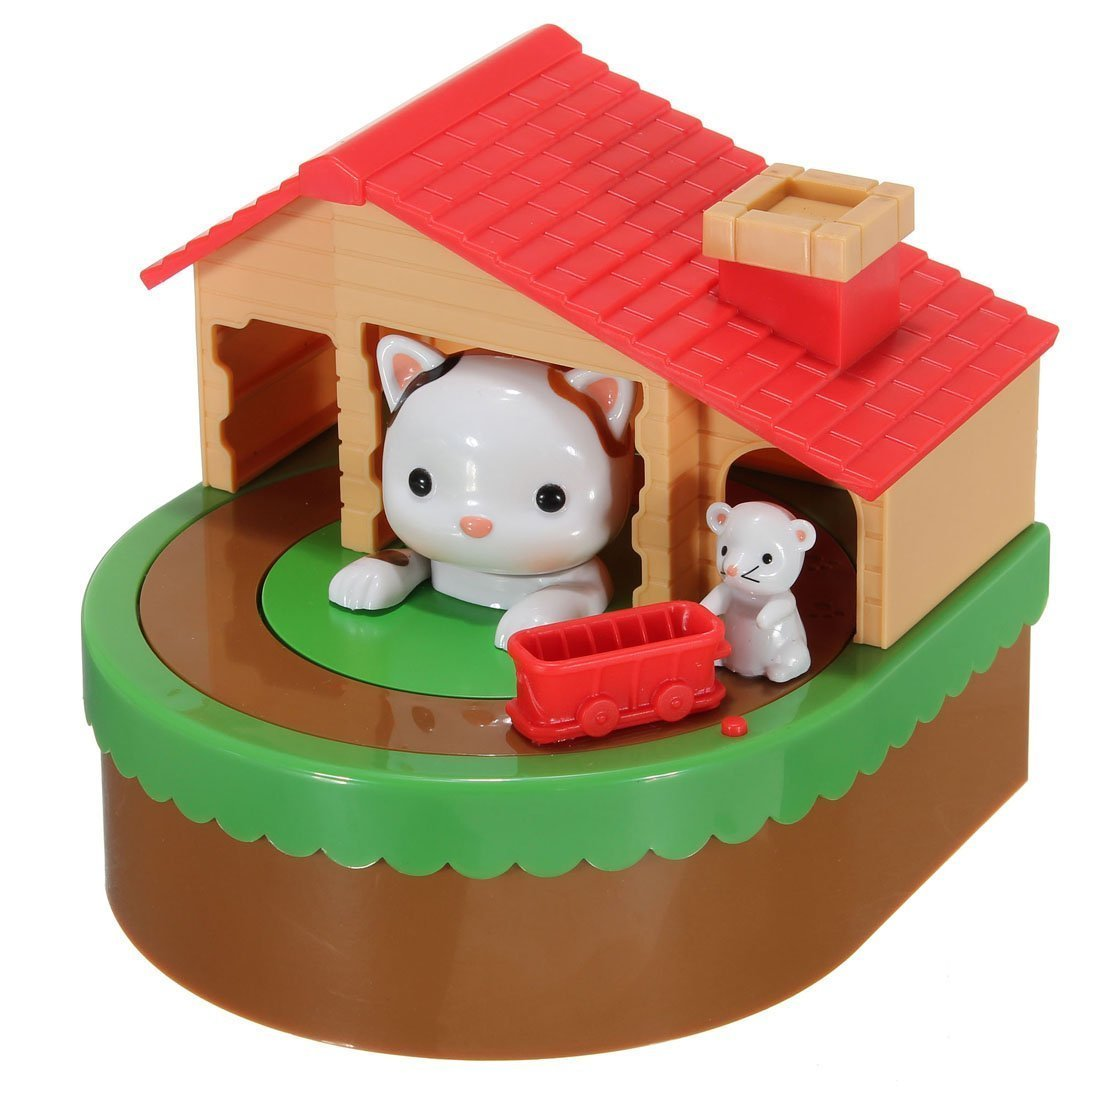 Emperor of Gadgets® Cat and Mouse Coin Saving Bank – Fun Coin Stealing Money Box for Kids